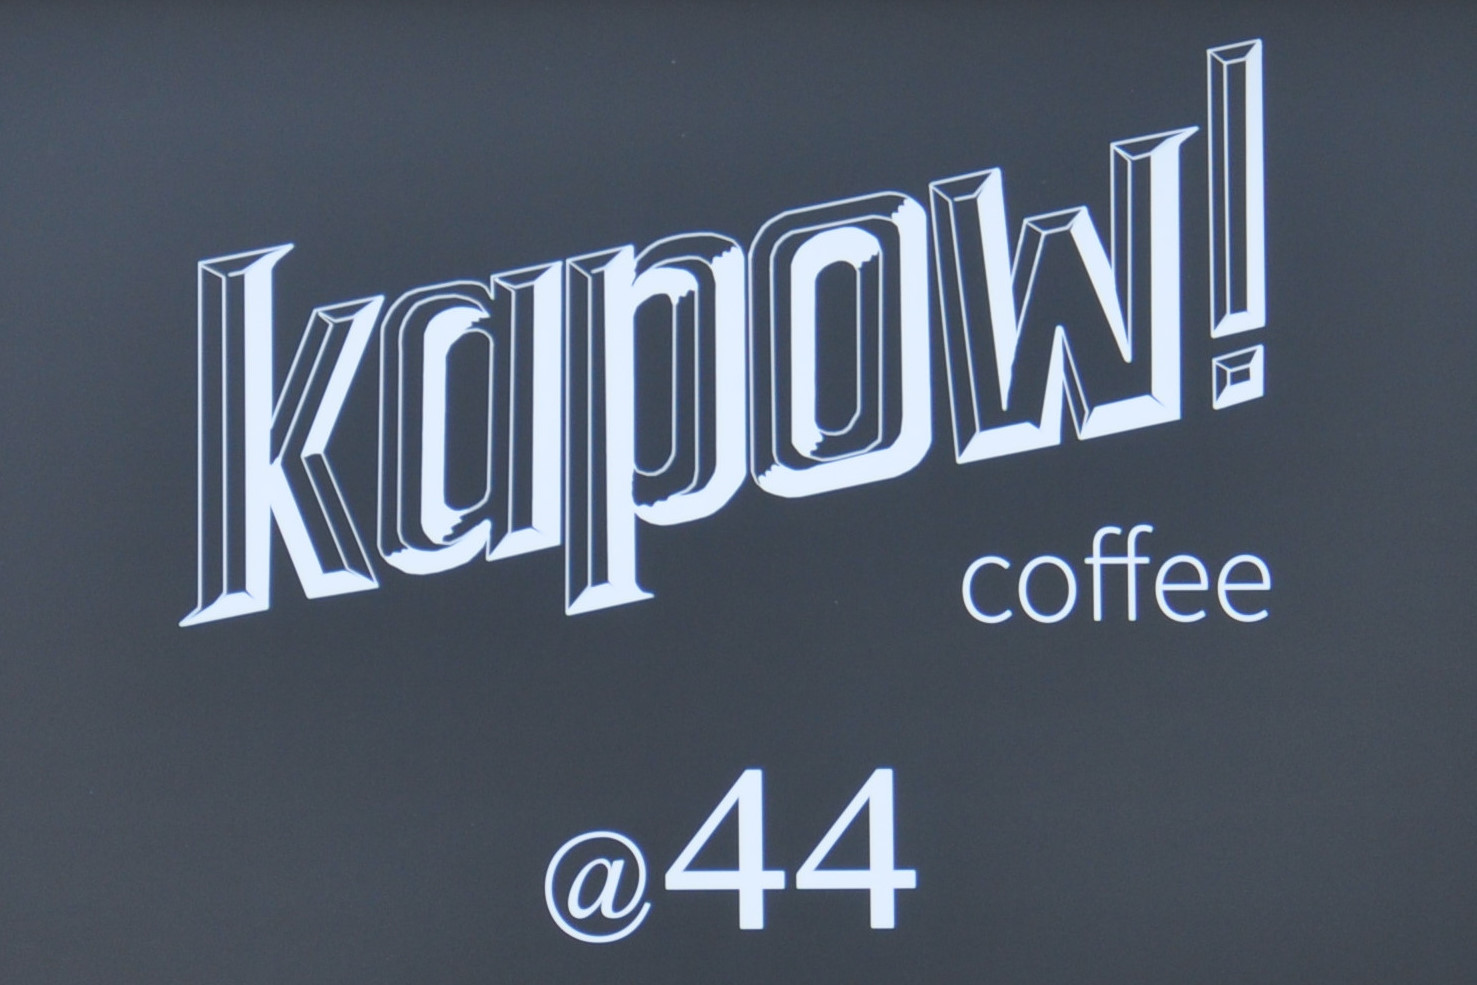 Details from the sign in the window of Kapow! Coffee at 44 The Calls in Leeds.